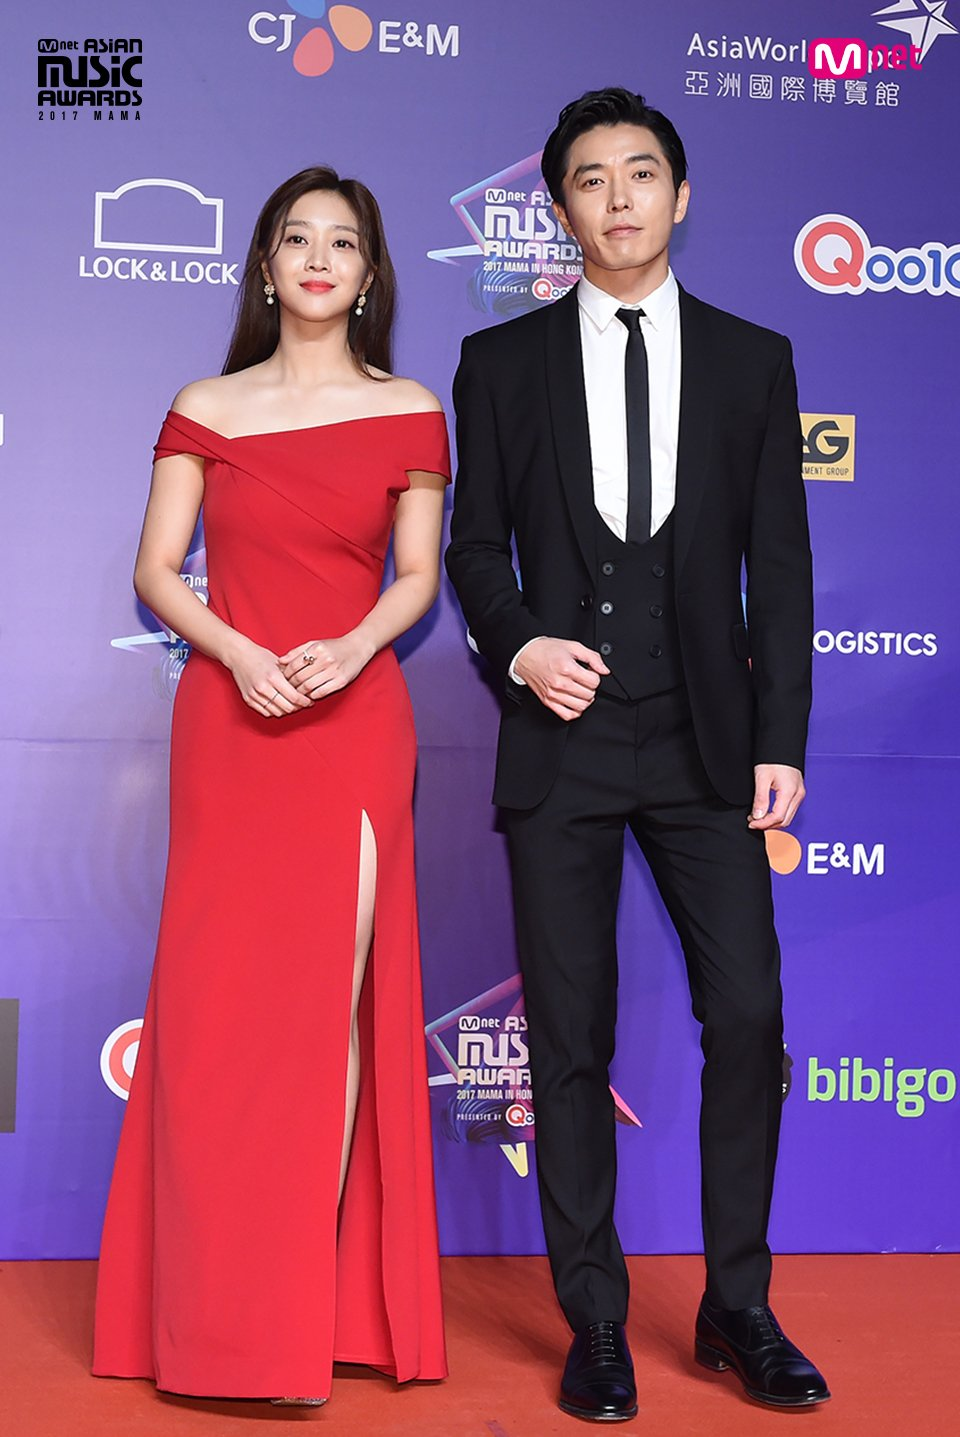 [#2017MAMA in Hong Kong] #KimJaeUck #ChoBoAh #SuperJunior Here go the LIVE photos of Red Carpet! #MAMARedCarpet https://t.co/x0Qhl2Mw5P